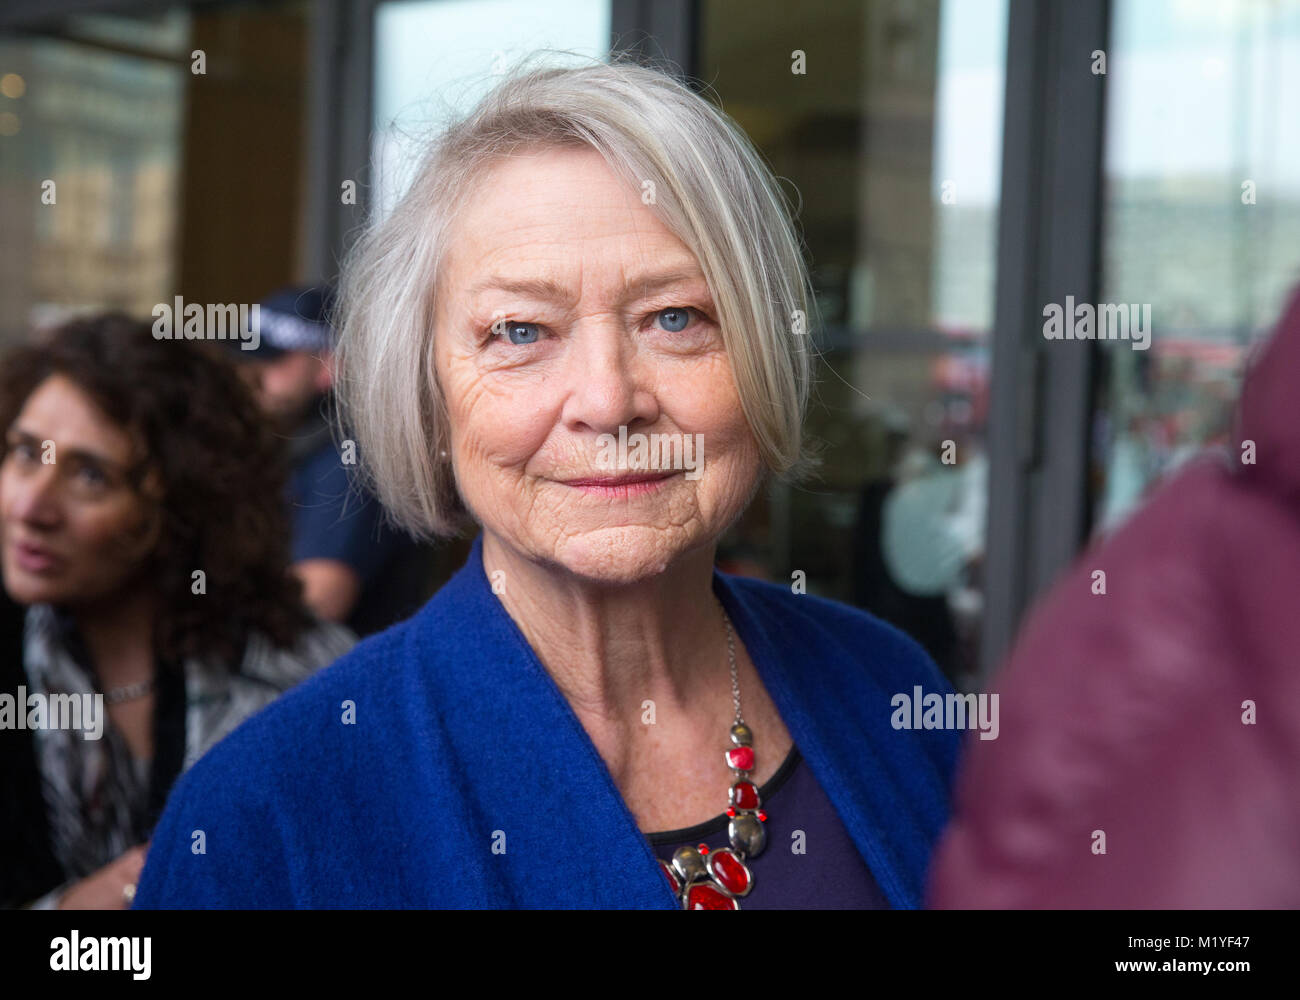 Journalist, Kate Adie, arrives at Portcullis House to support Carrie Gracie at the inquiry into fair pay for women - Stock Image